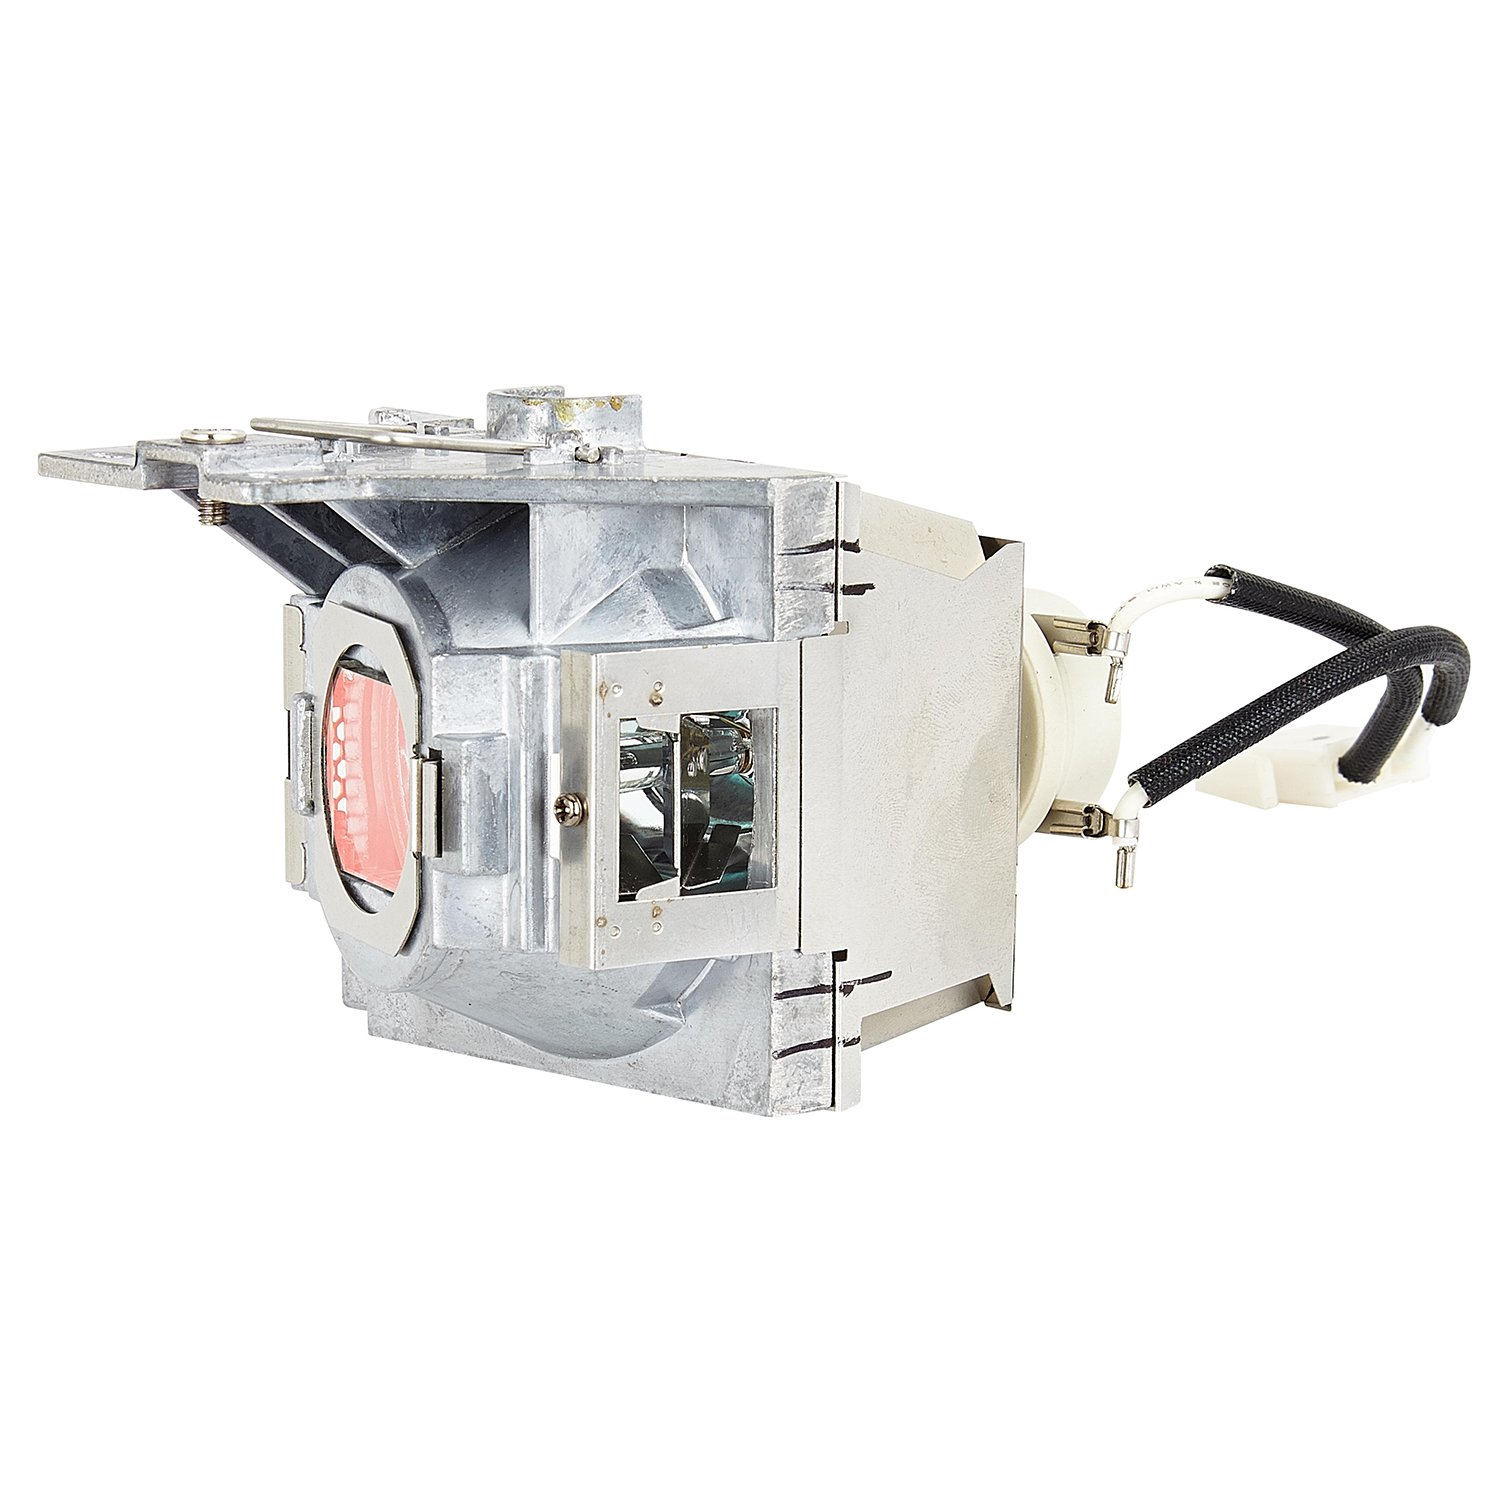 ViewSonic RLC-100 Projector Replacement Lamp for ViewSonic PJD7828HDL, PJD7720HD, PJD7831HDL Projectors by ViewSonic (Image #3)